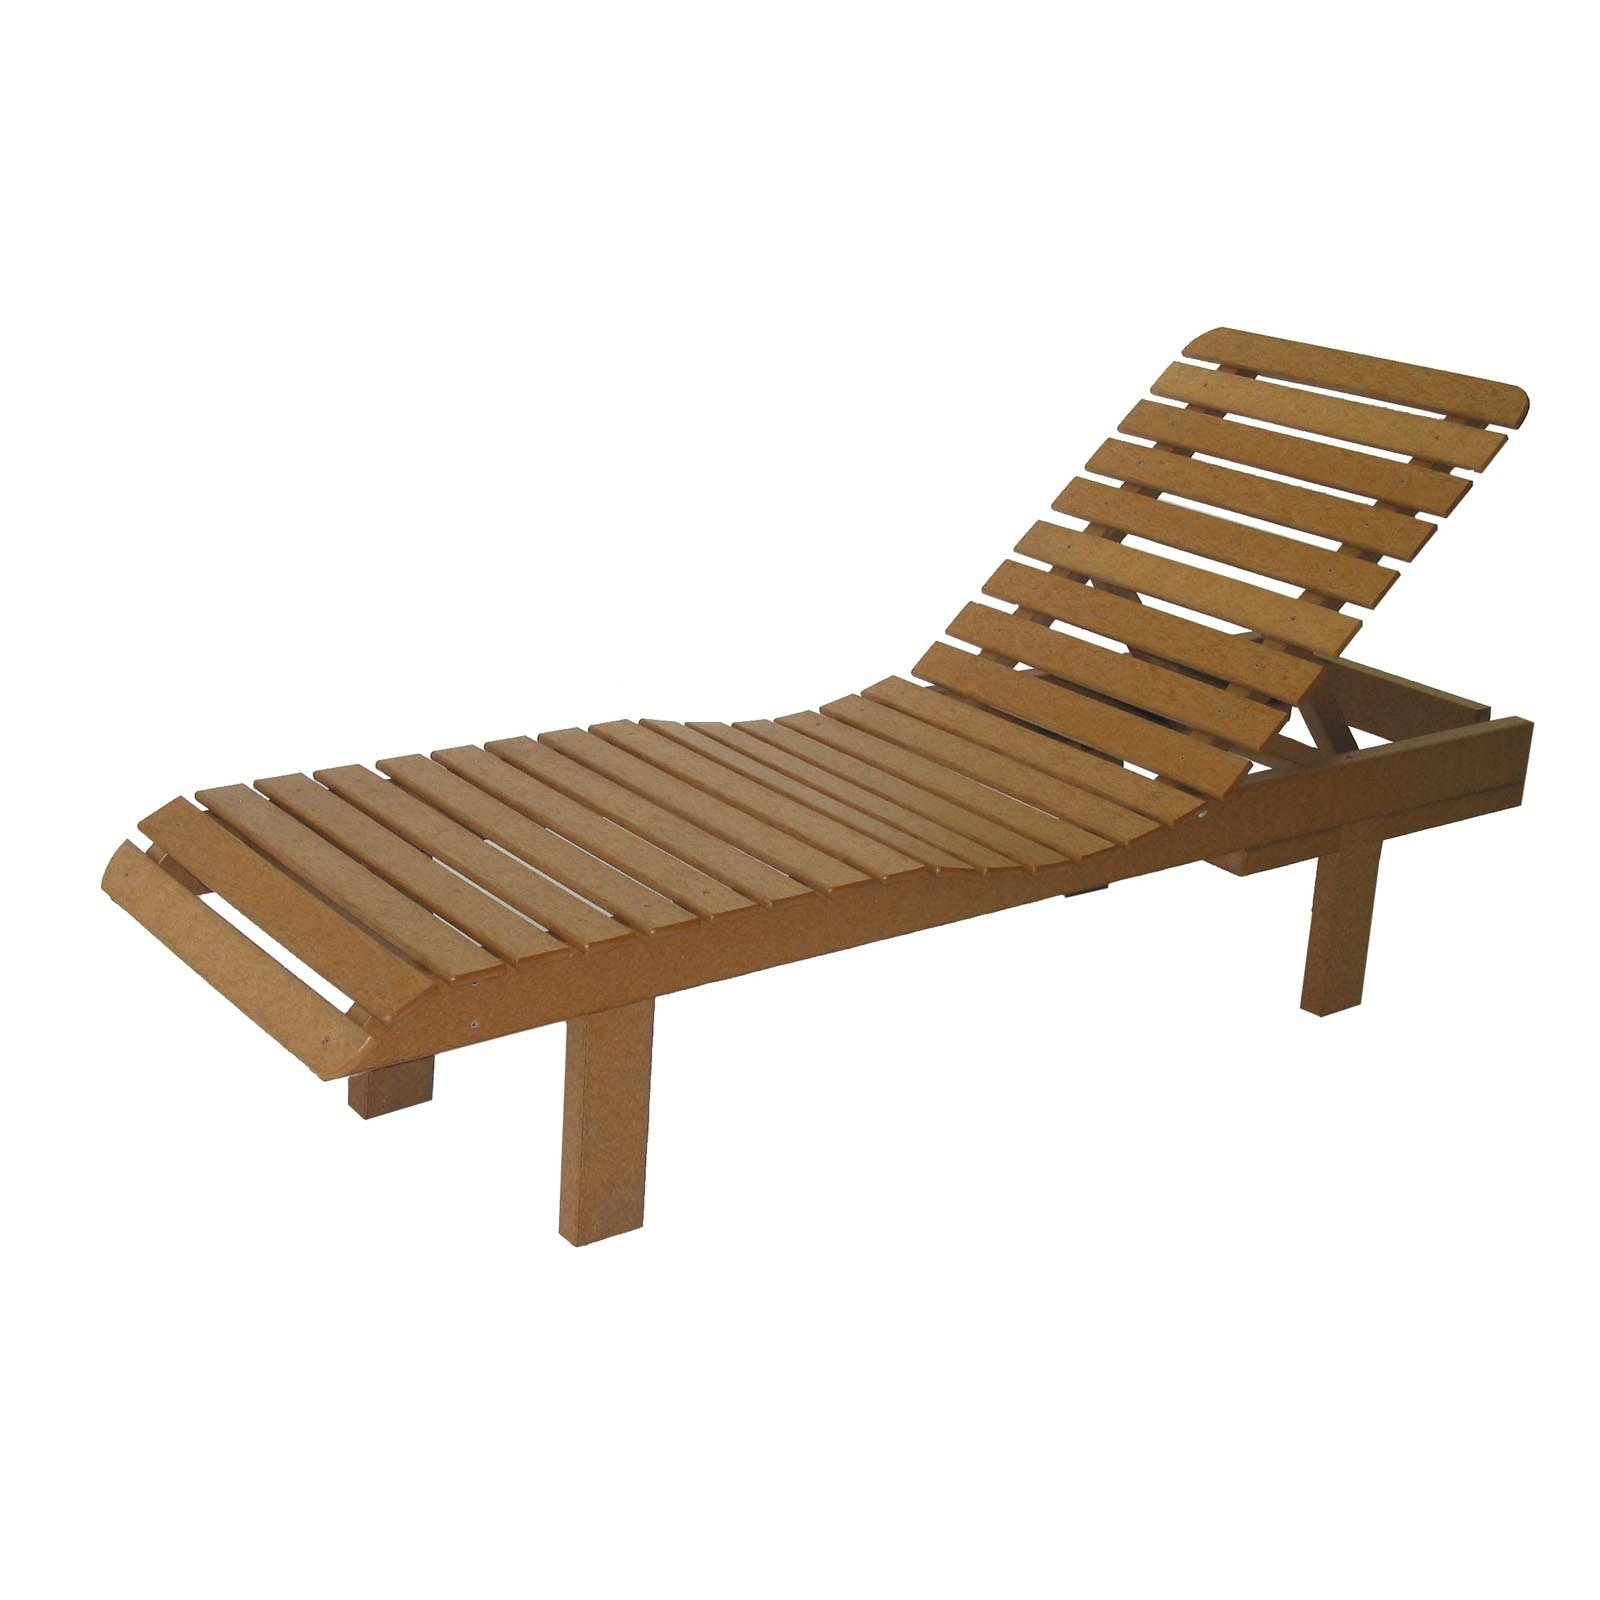 Wood Chaise Lounge Chairs Inside 2018 Wooden Beach Chaise Lounge Chairs Best House Design : Design Beach (View 11 of 15)